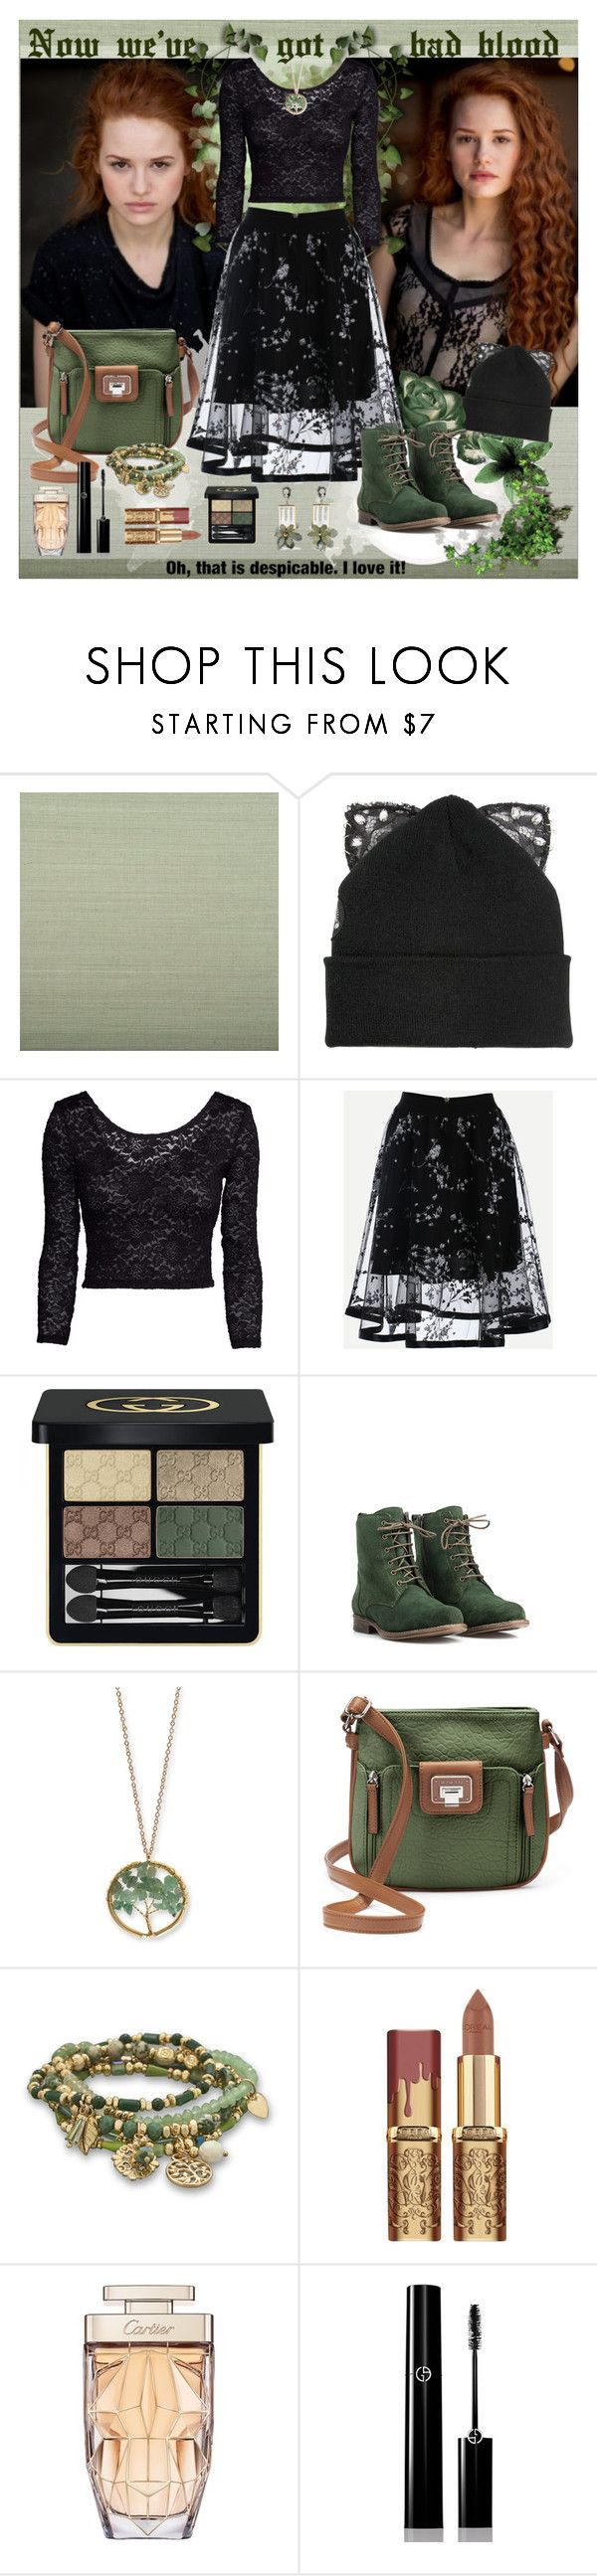 """""""Bad blood"""" by julyralewis ❤ liked on Polyvore featuring Ballard Designs, Silver Spoon Attire, H&M, Gucci, JJ Footwear, Kim Rogers, Rosetti, BillyTheTree, Cartier and Giorgio Armani"""